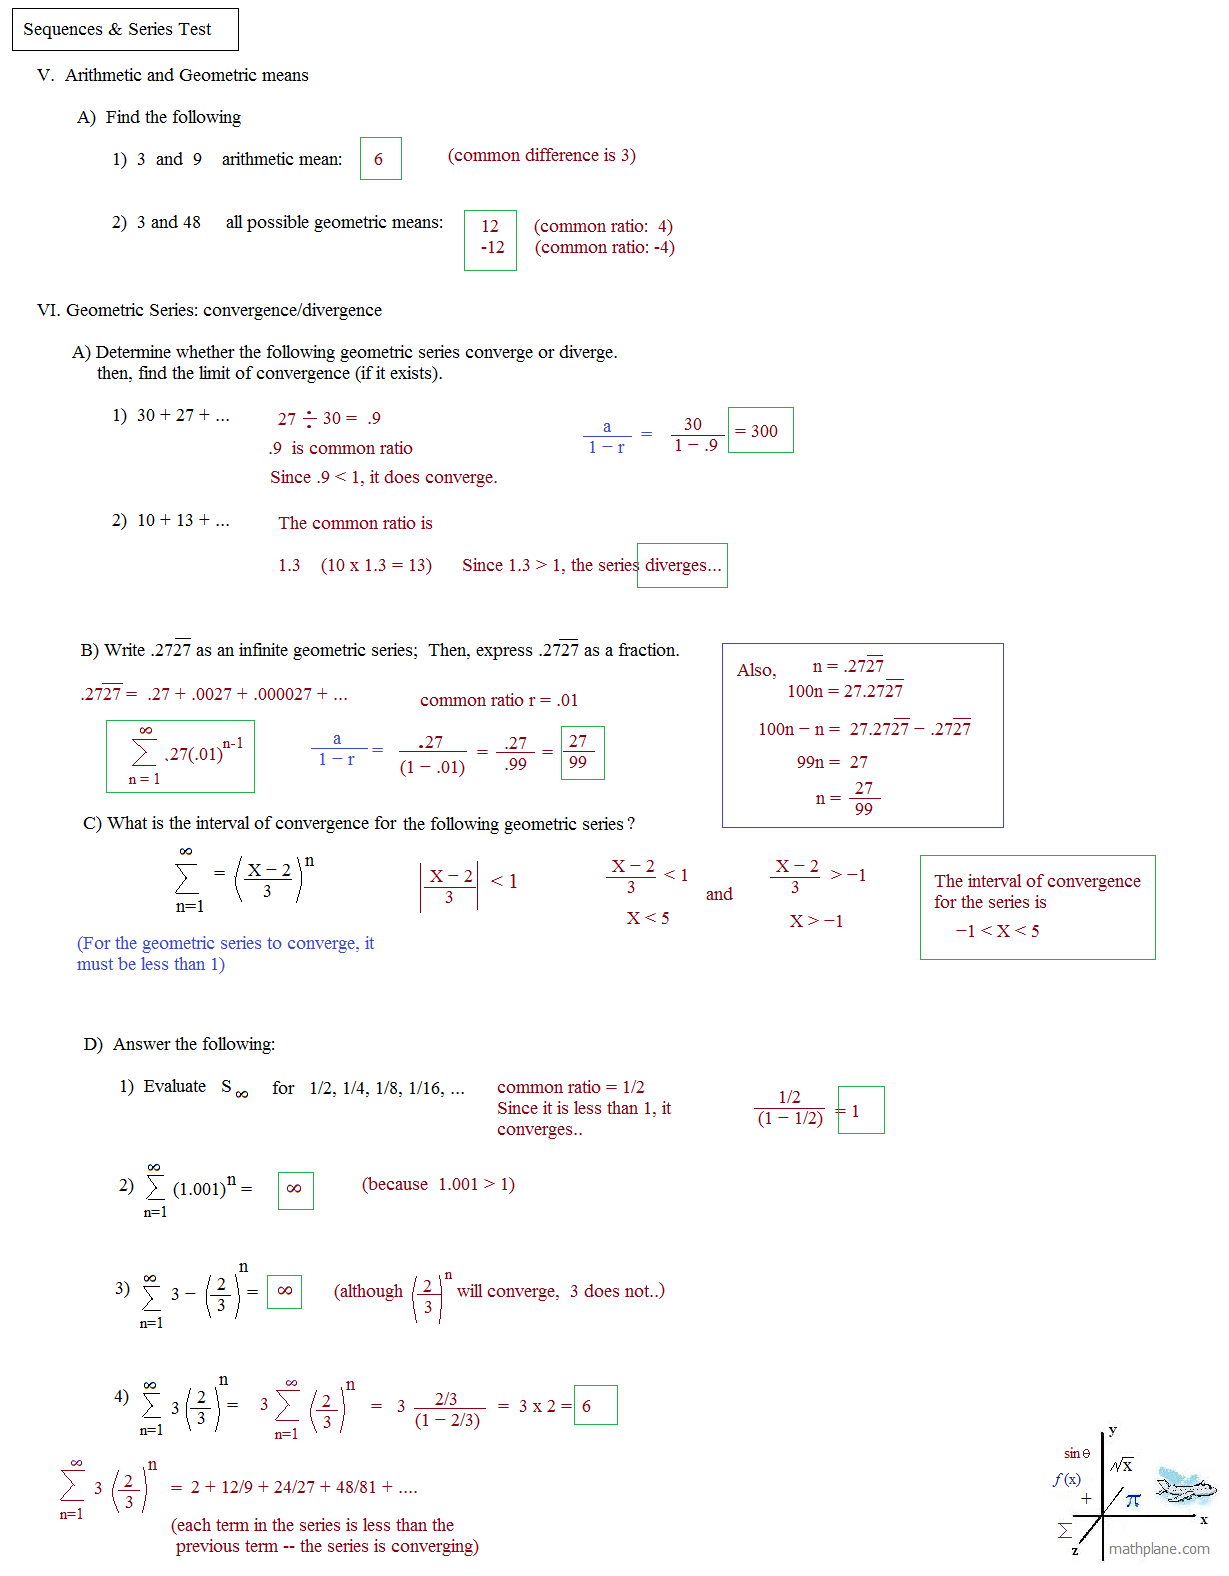 Printables Sequences And Series Worksheets arithmetic sequences and series worksheet plustheapp mathplane test 3 solutions